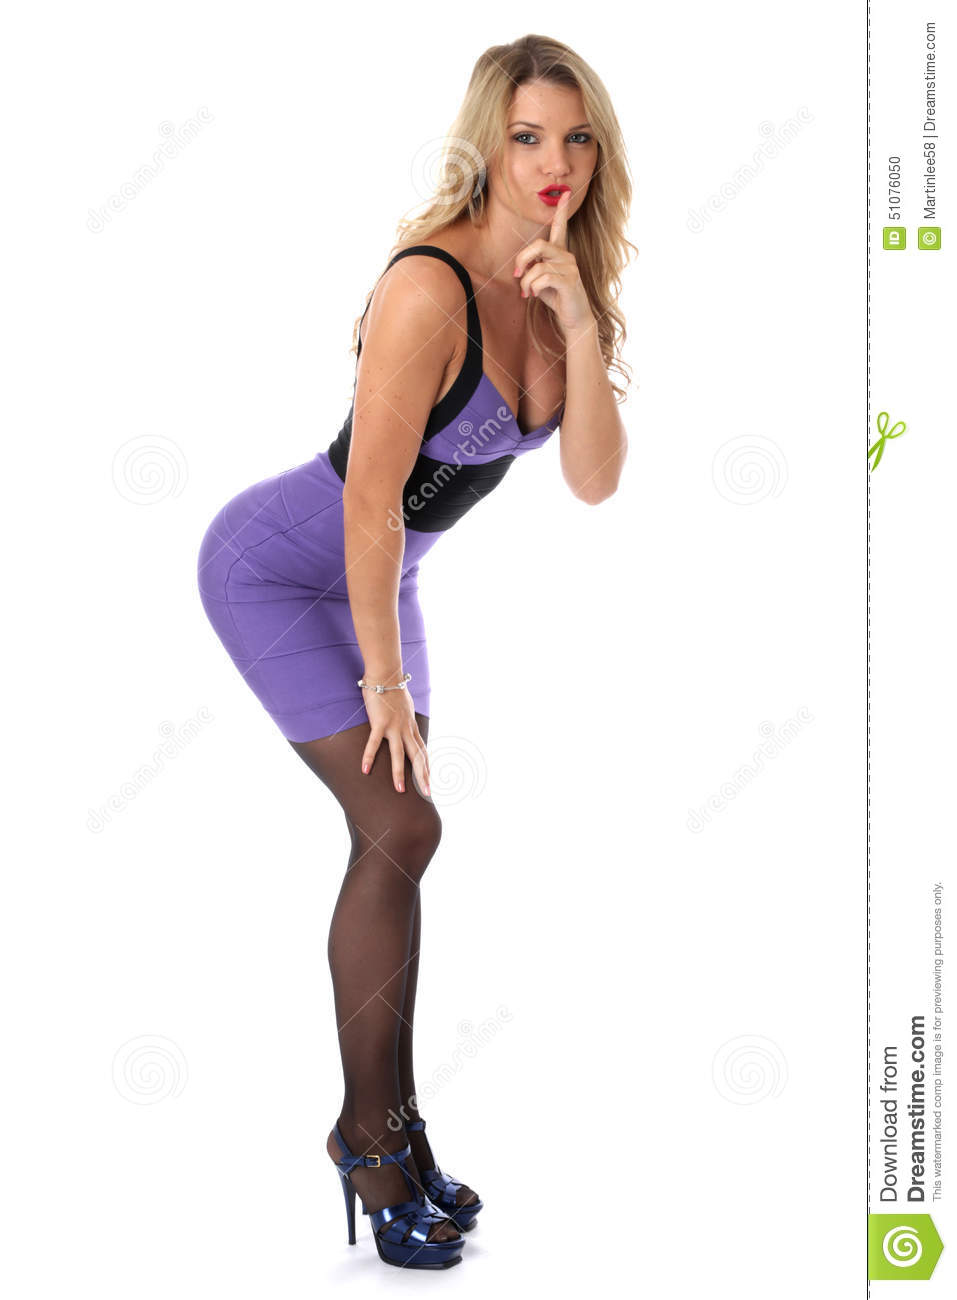 Young woman wearing tight purple short mini dress high heels stock